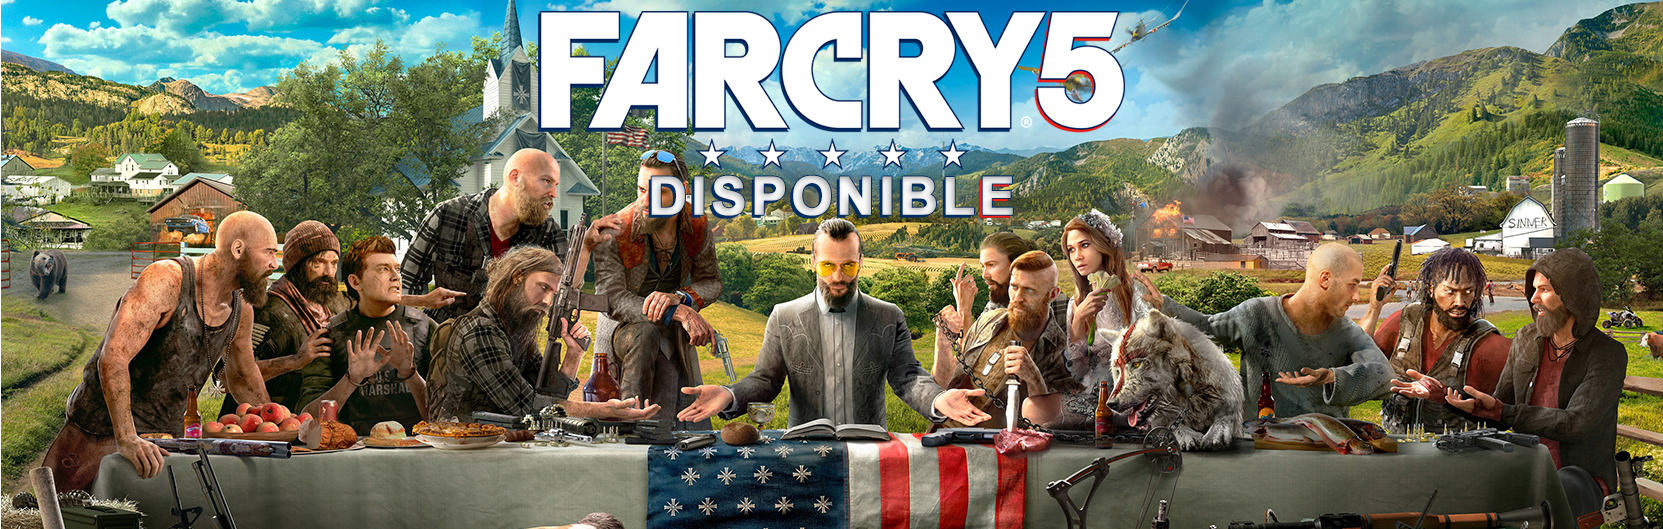 Far Cry 5 disponible !